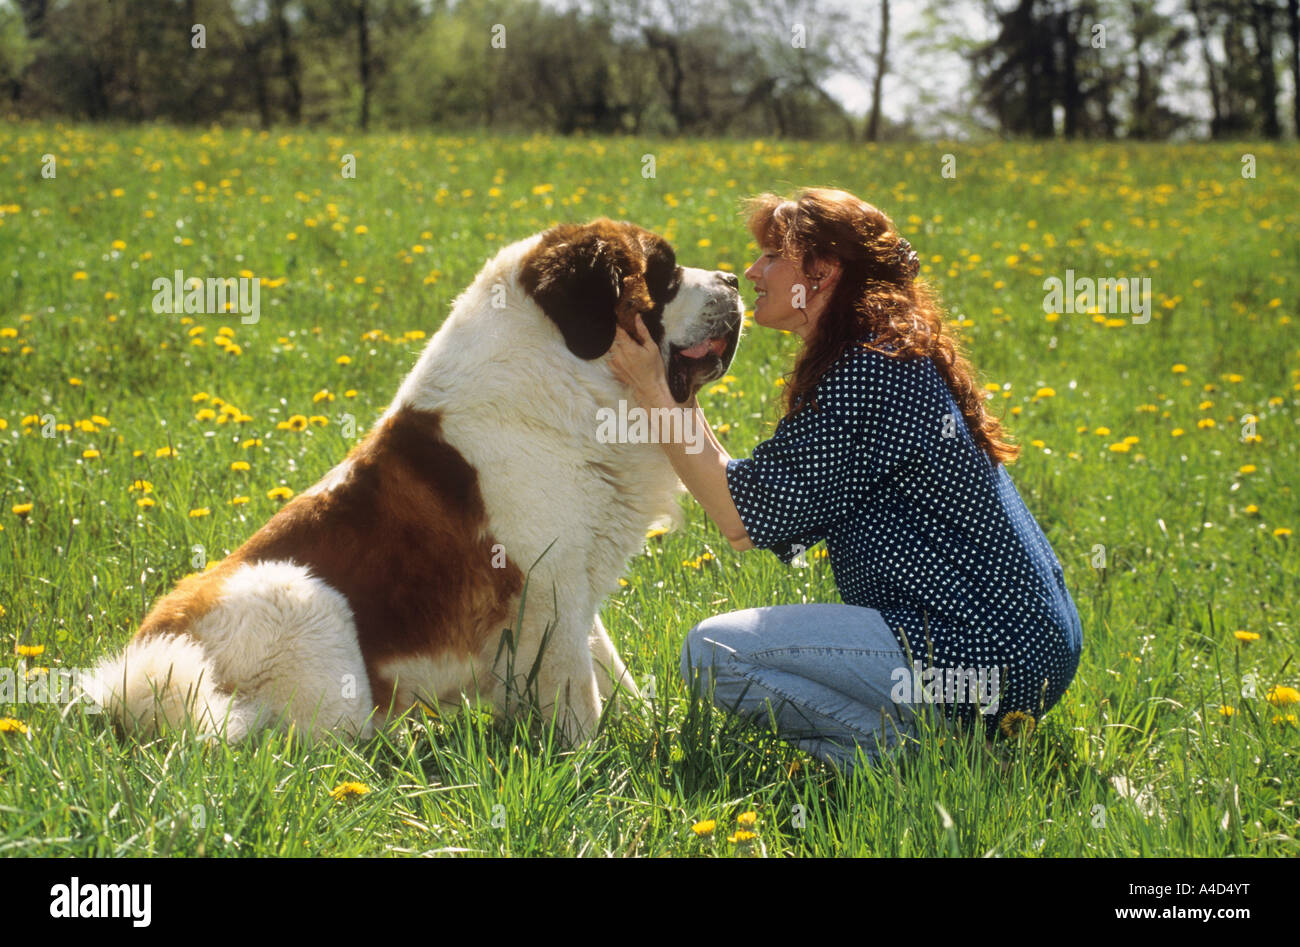 saint bernard asian personals Find saint bernards for sale on oodle classifieds join millions of people using oodle to find puppies for adoption, dog and puppy listings, and other pets adoption don't miss what's happening in your neighborhood.